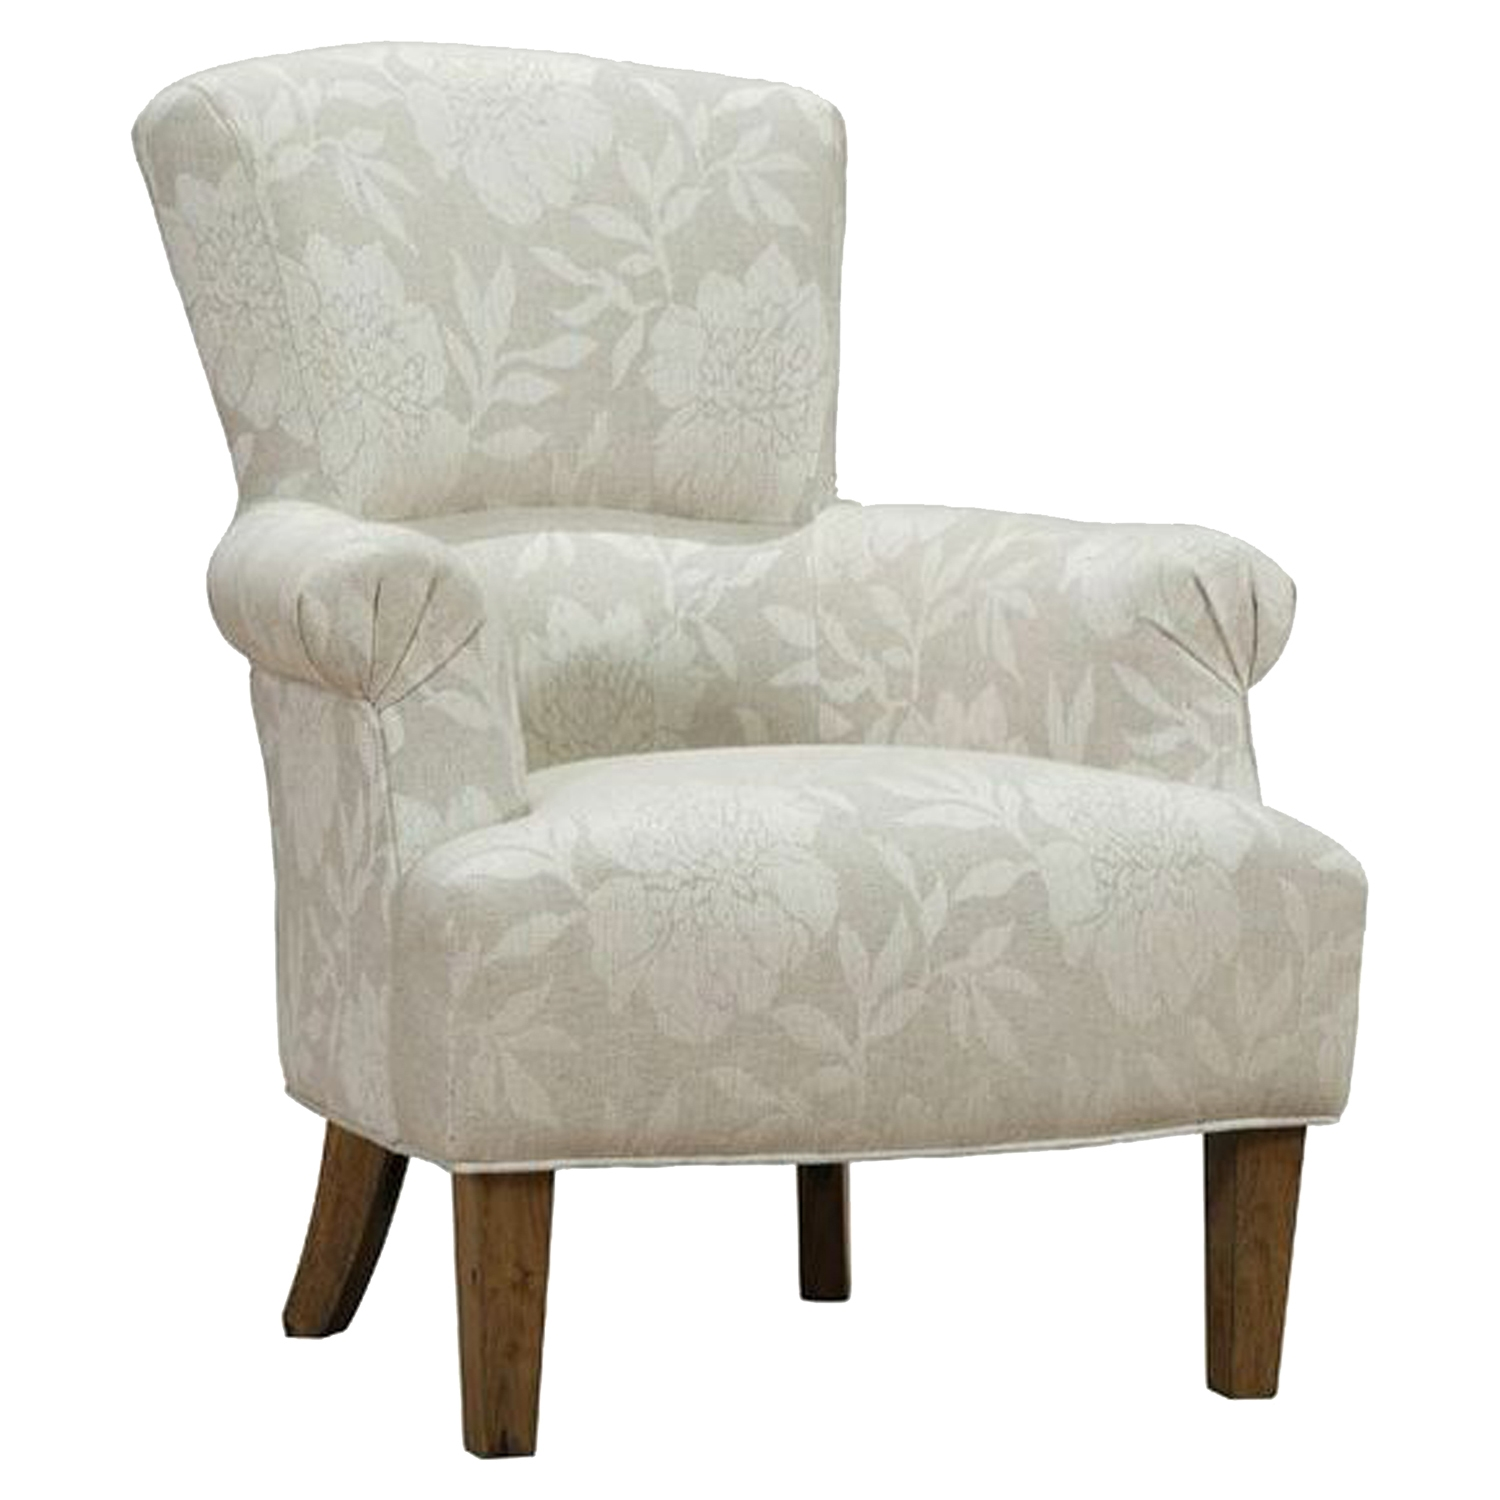 Barstow Accent Chair - Cream Flower Fabric - AL-LCBACHCR